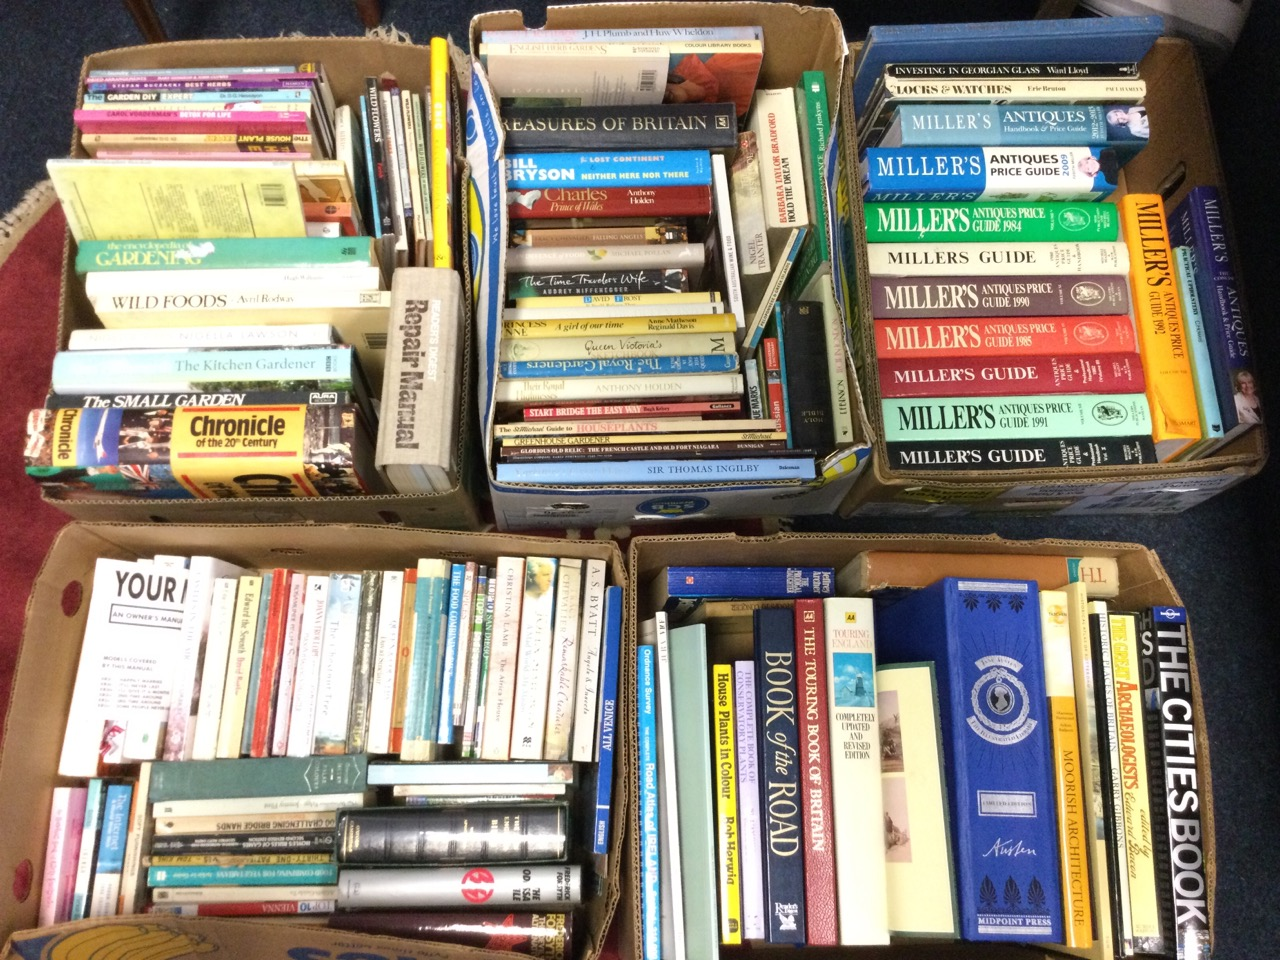 Five boxes of books - gardening & cooking, history & royalty, antiques & Millers guides, travel &